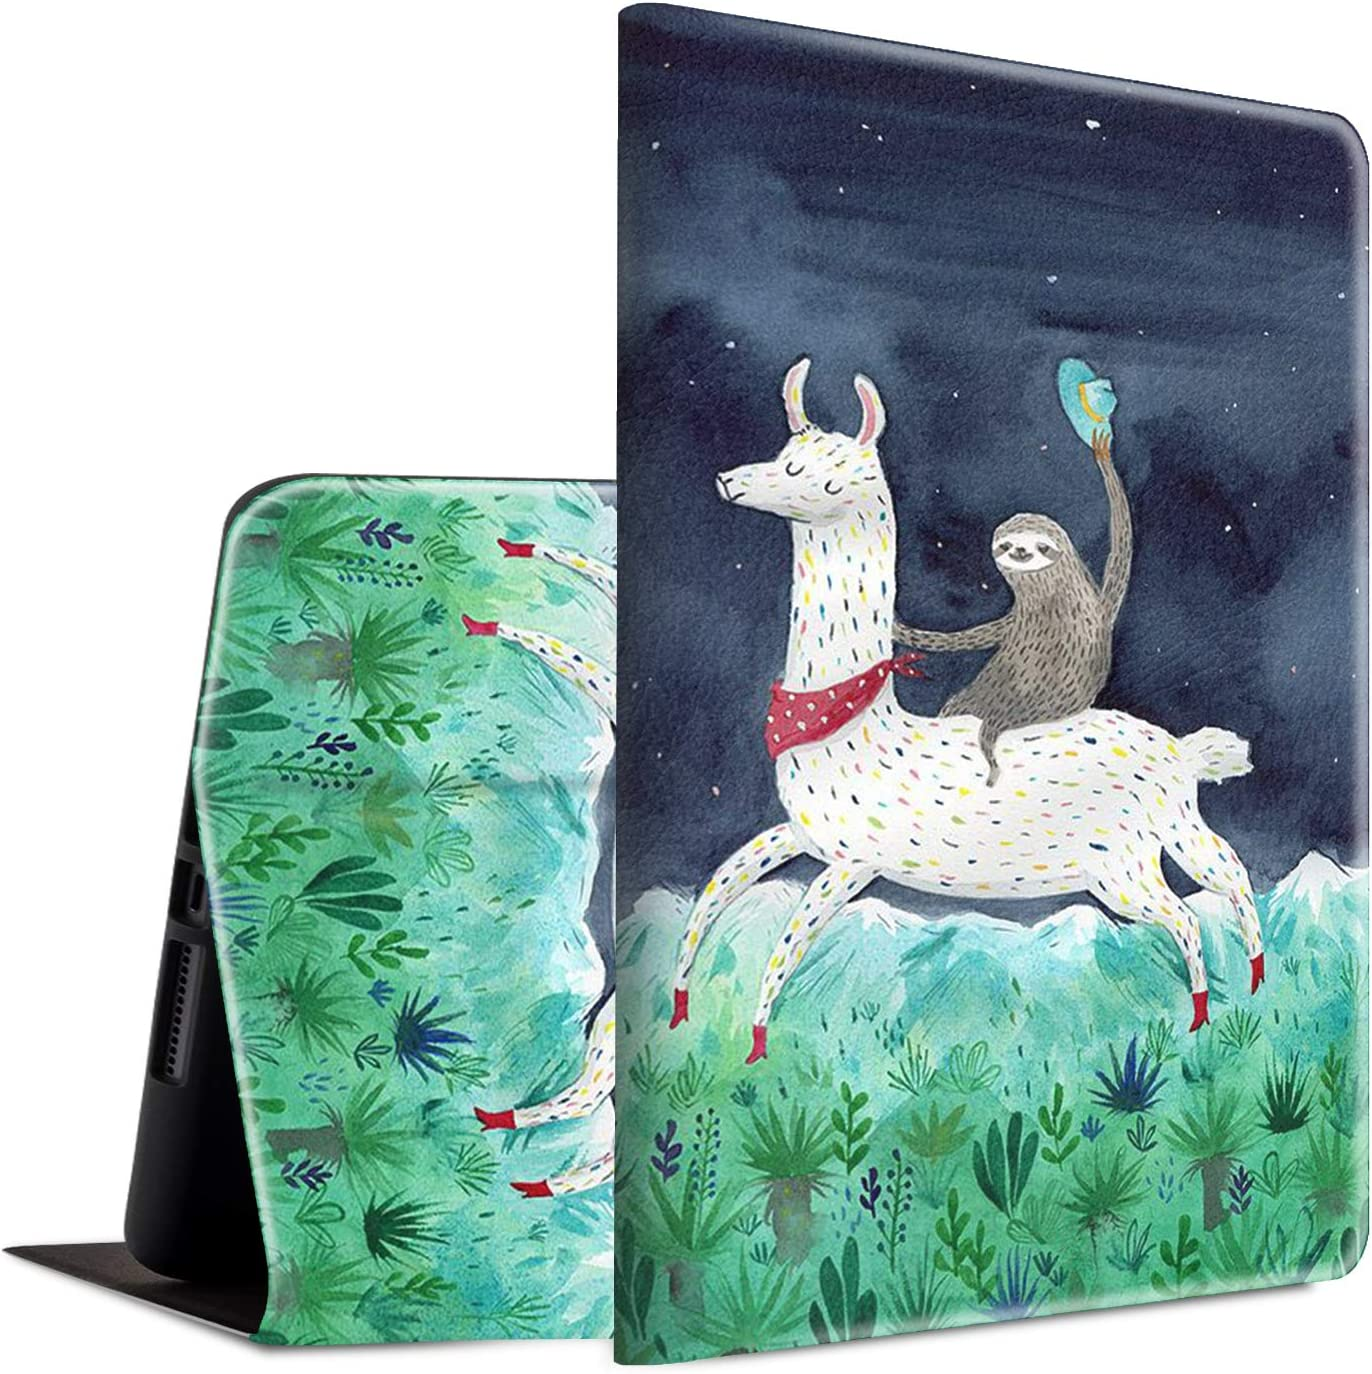 Case for New iPad 8th/7th Generation, iPad 10.2 2020/2019 Case, Spsun Lightweight PU Leather Cover Adjustable Stand with Auto Wake/Sleep Smart Protect Case - Sloth Riding Llama